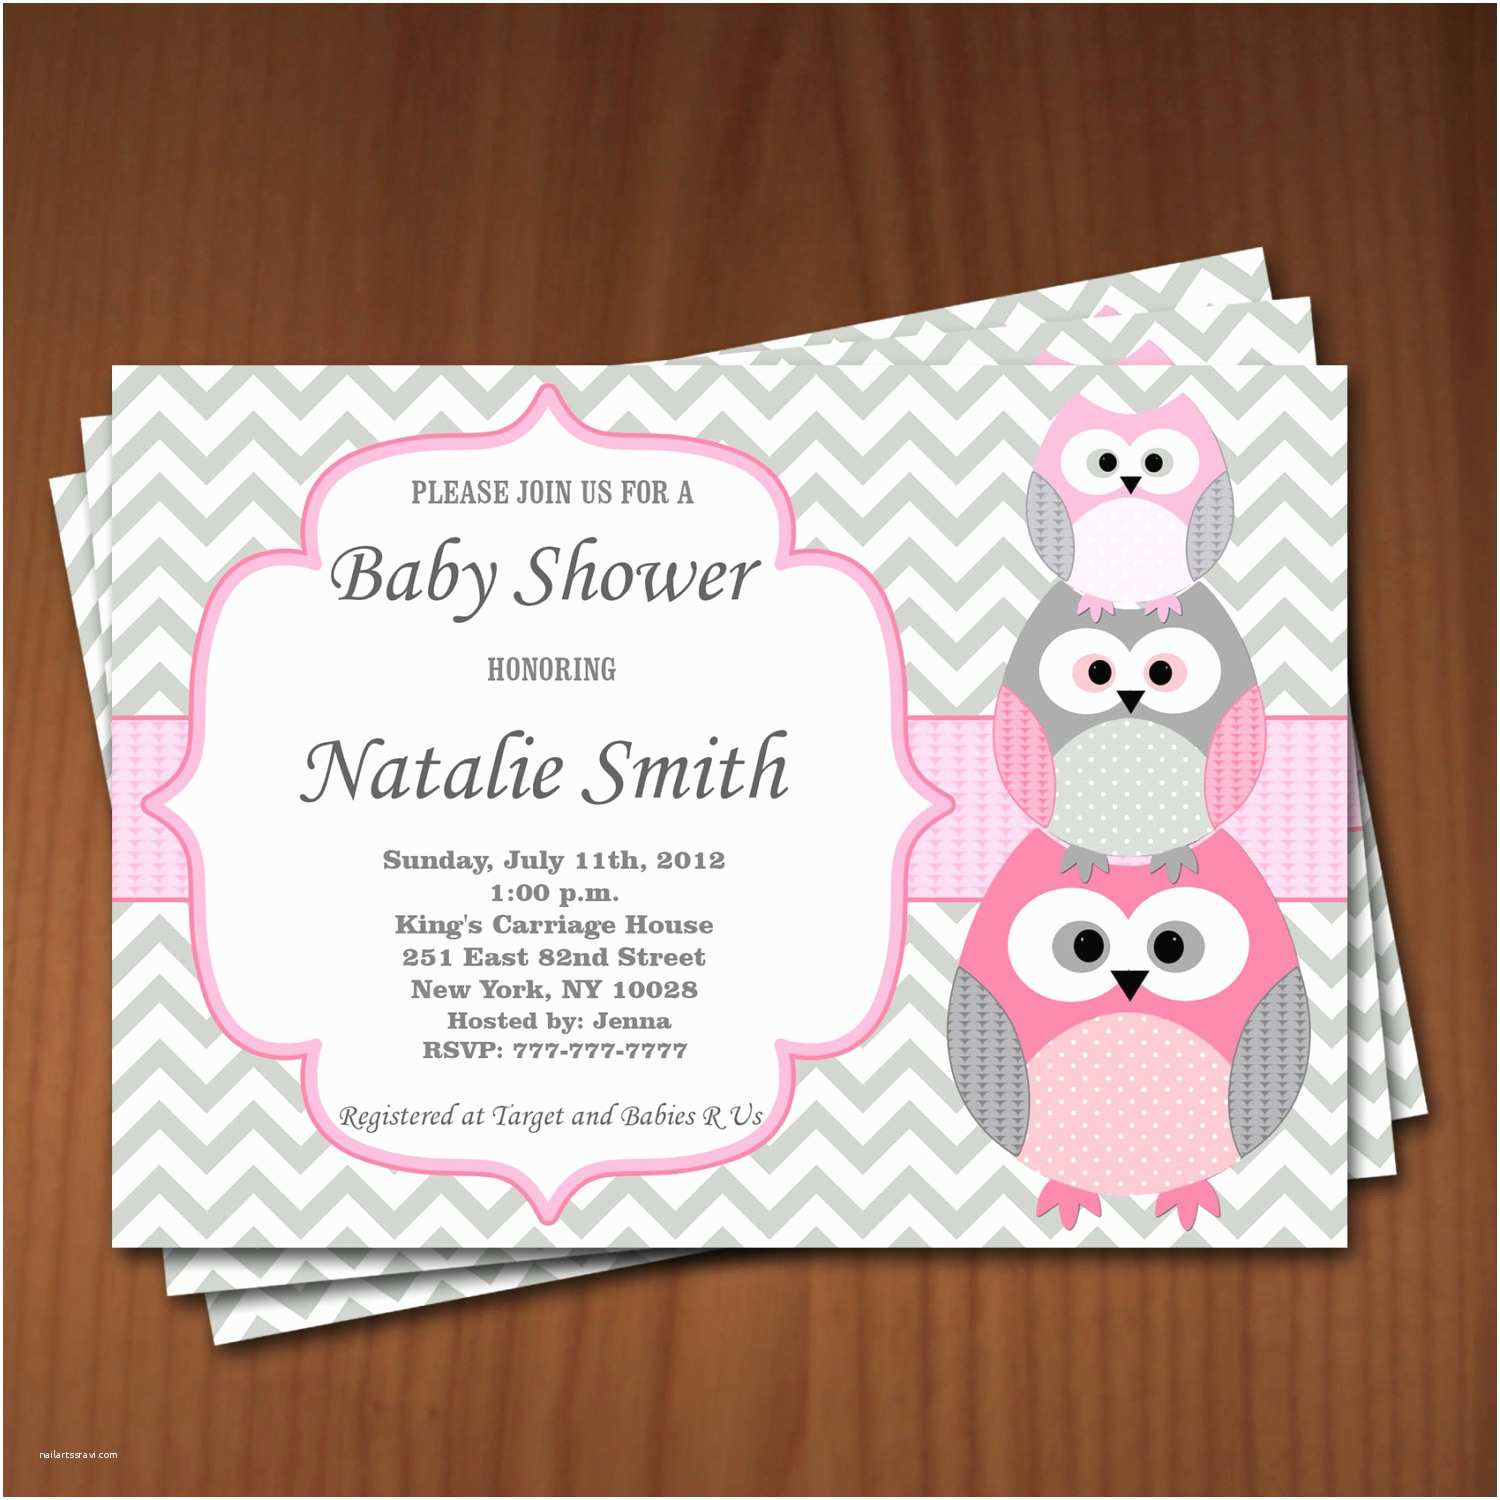 Baby Shower Invitations Girl Owl Baby Shower Invitation Girl Baby Shower Invitations